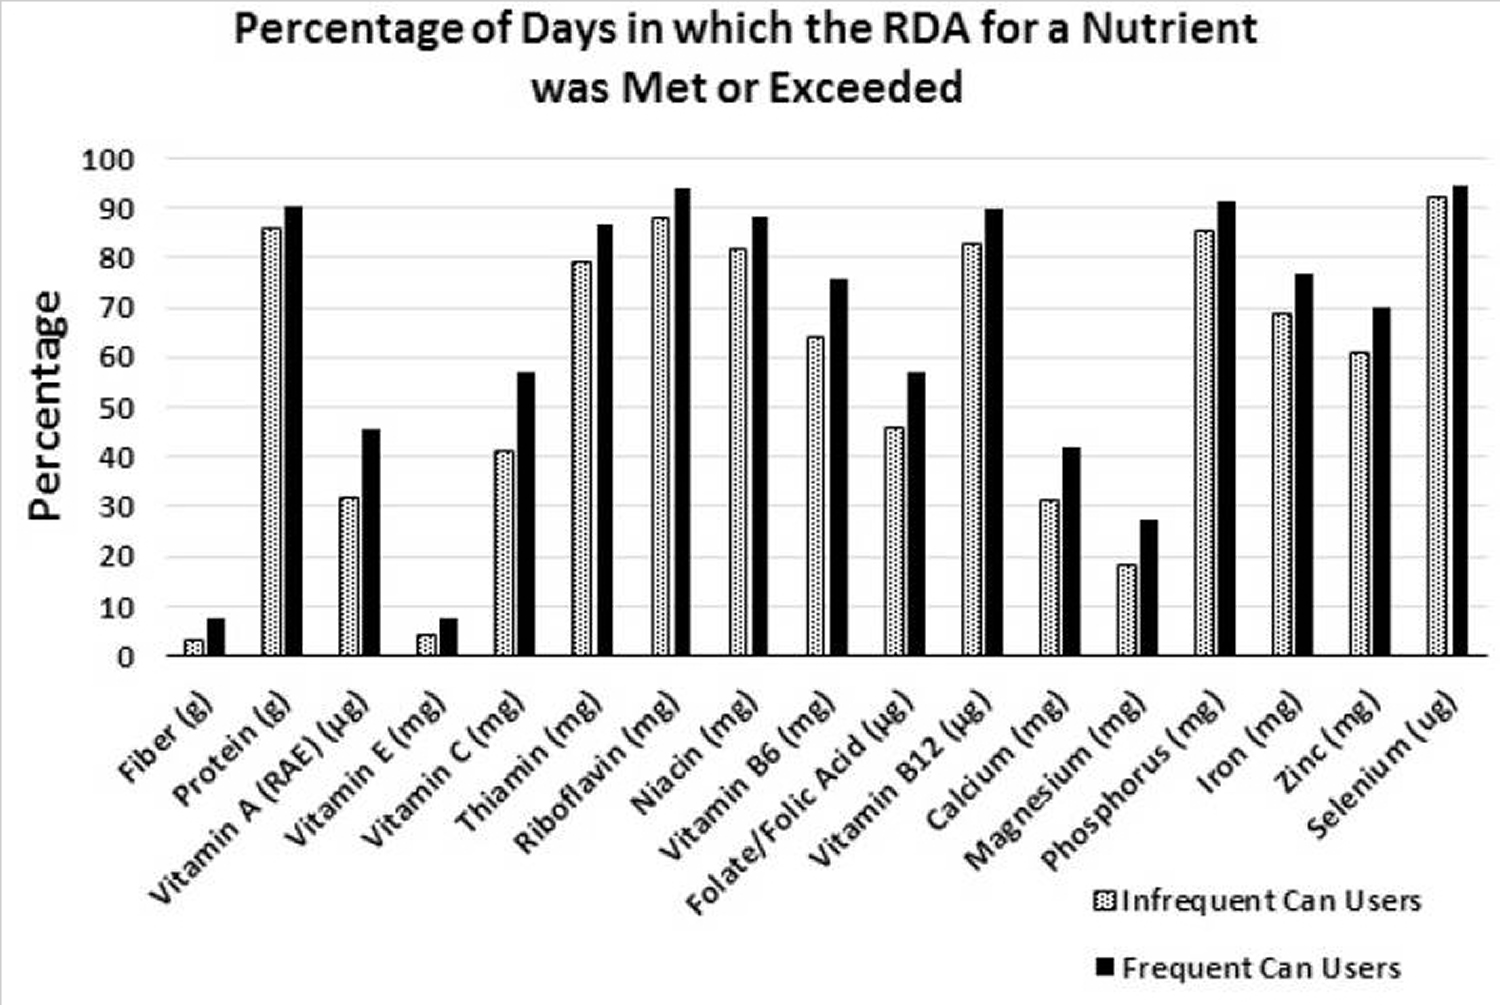 days the canned food and non-canned food users exceeded the Recommended Dietary Allowance for different nutrients